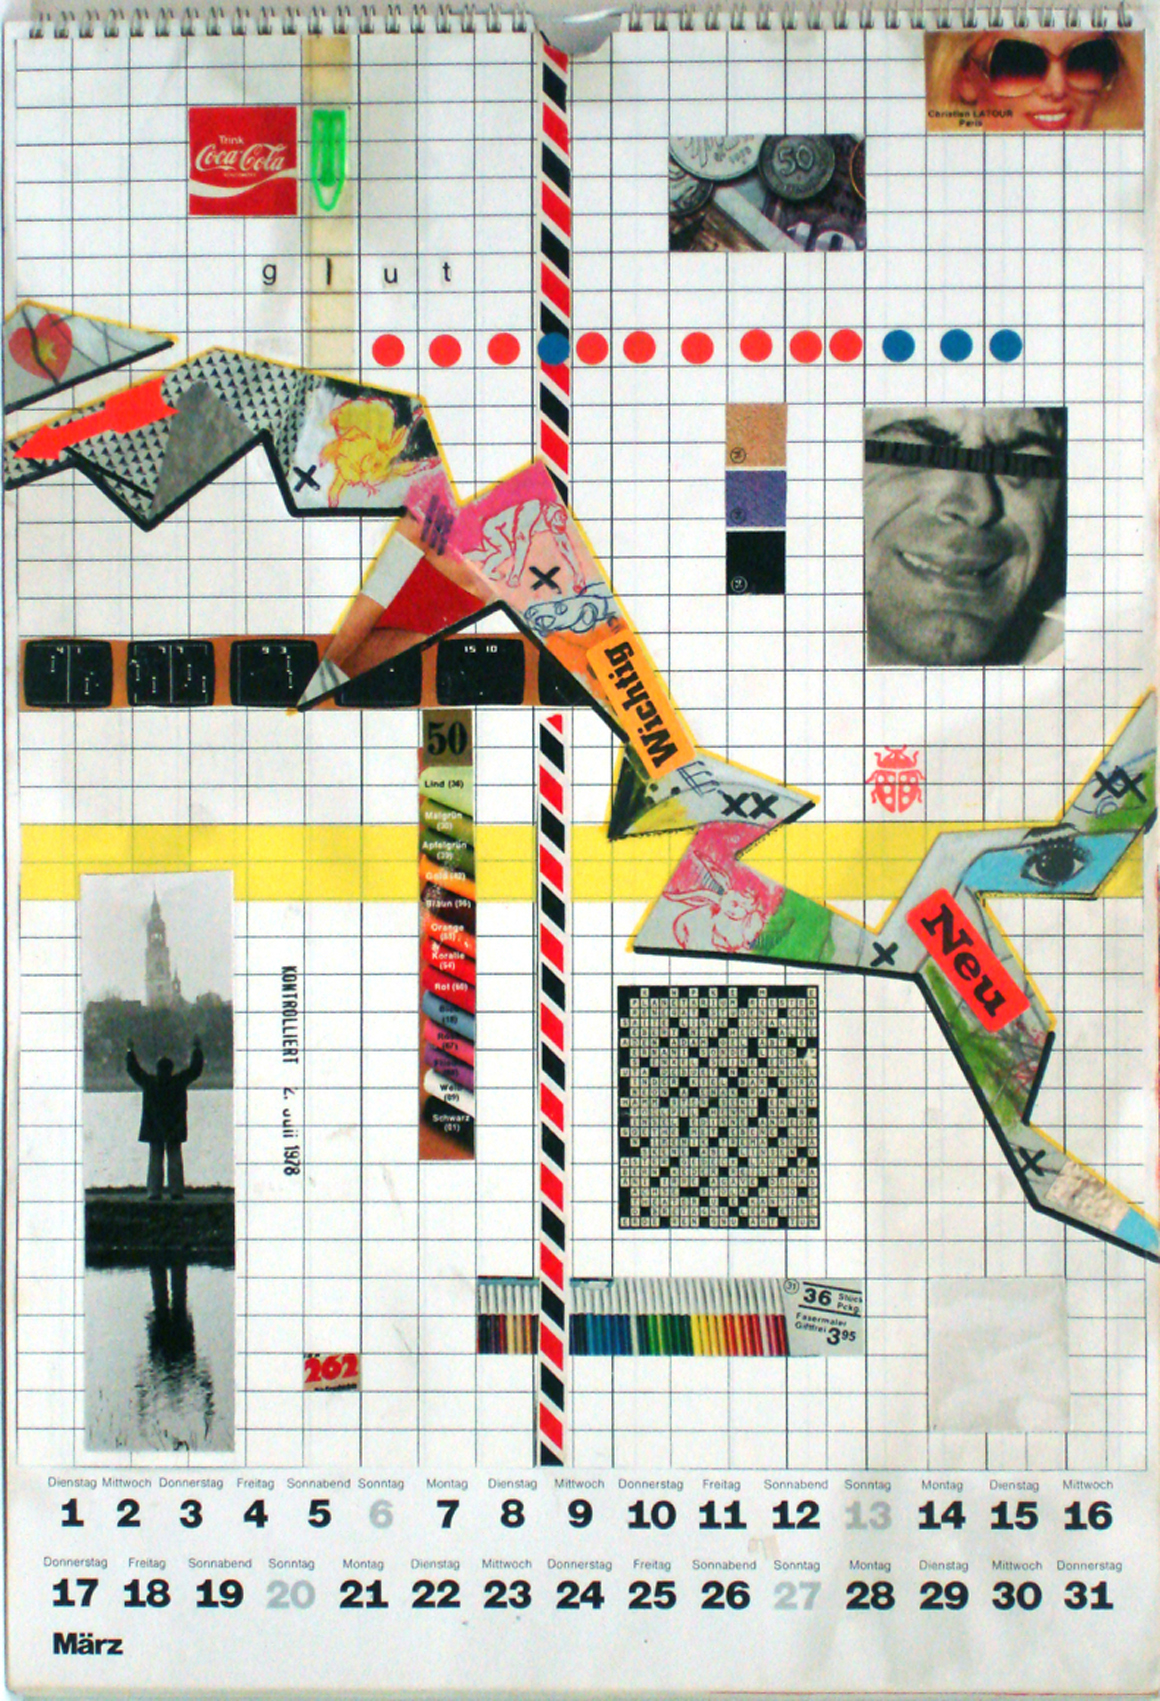 """<p><span class=""""name"""">Moritz Reichelt</span><br><em>Calendar 1977 March</em><span class='media'>collage</span>16 x 11.25 in (40.6 x 28.6 cm)<br>20.75 x 16.75 in (52.7 x 42.5 cm) Framed (framed)<br>1977<br><a class='inquire' href='mailto:info@gildargallery.com?subject=Artwork Inquiry MREI0013&body=I am interested in finding out more about Calendar 1977 March by Moritz Reichelt'>Inquire</a></p>"""